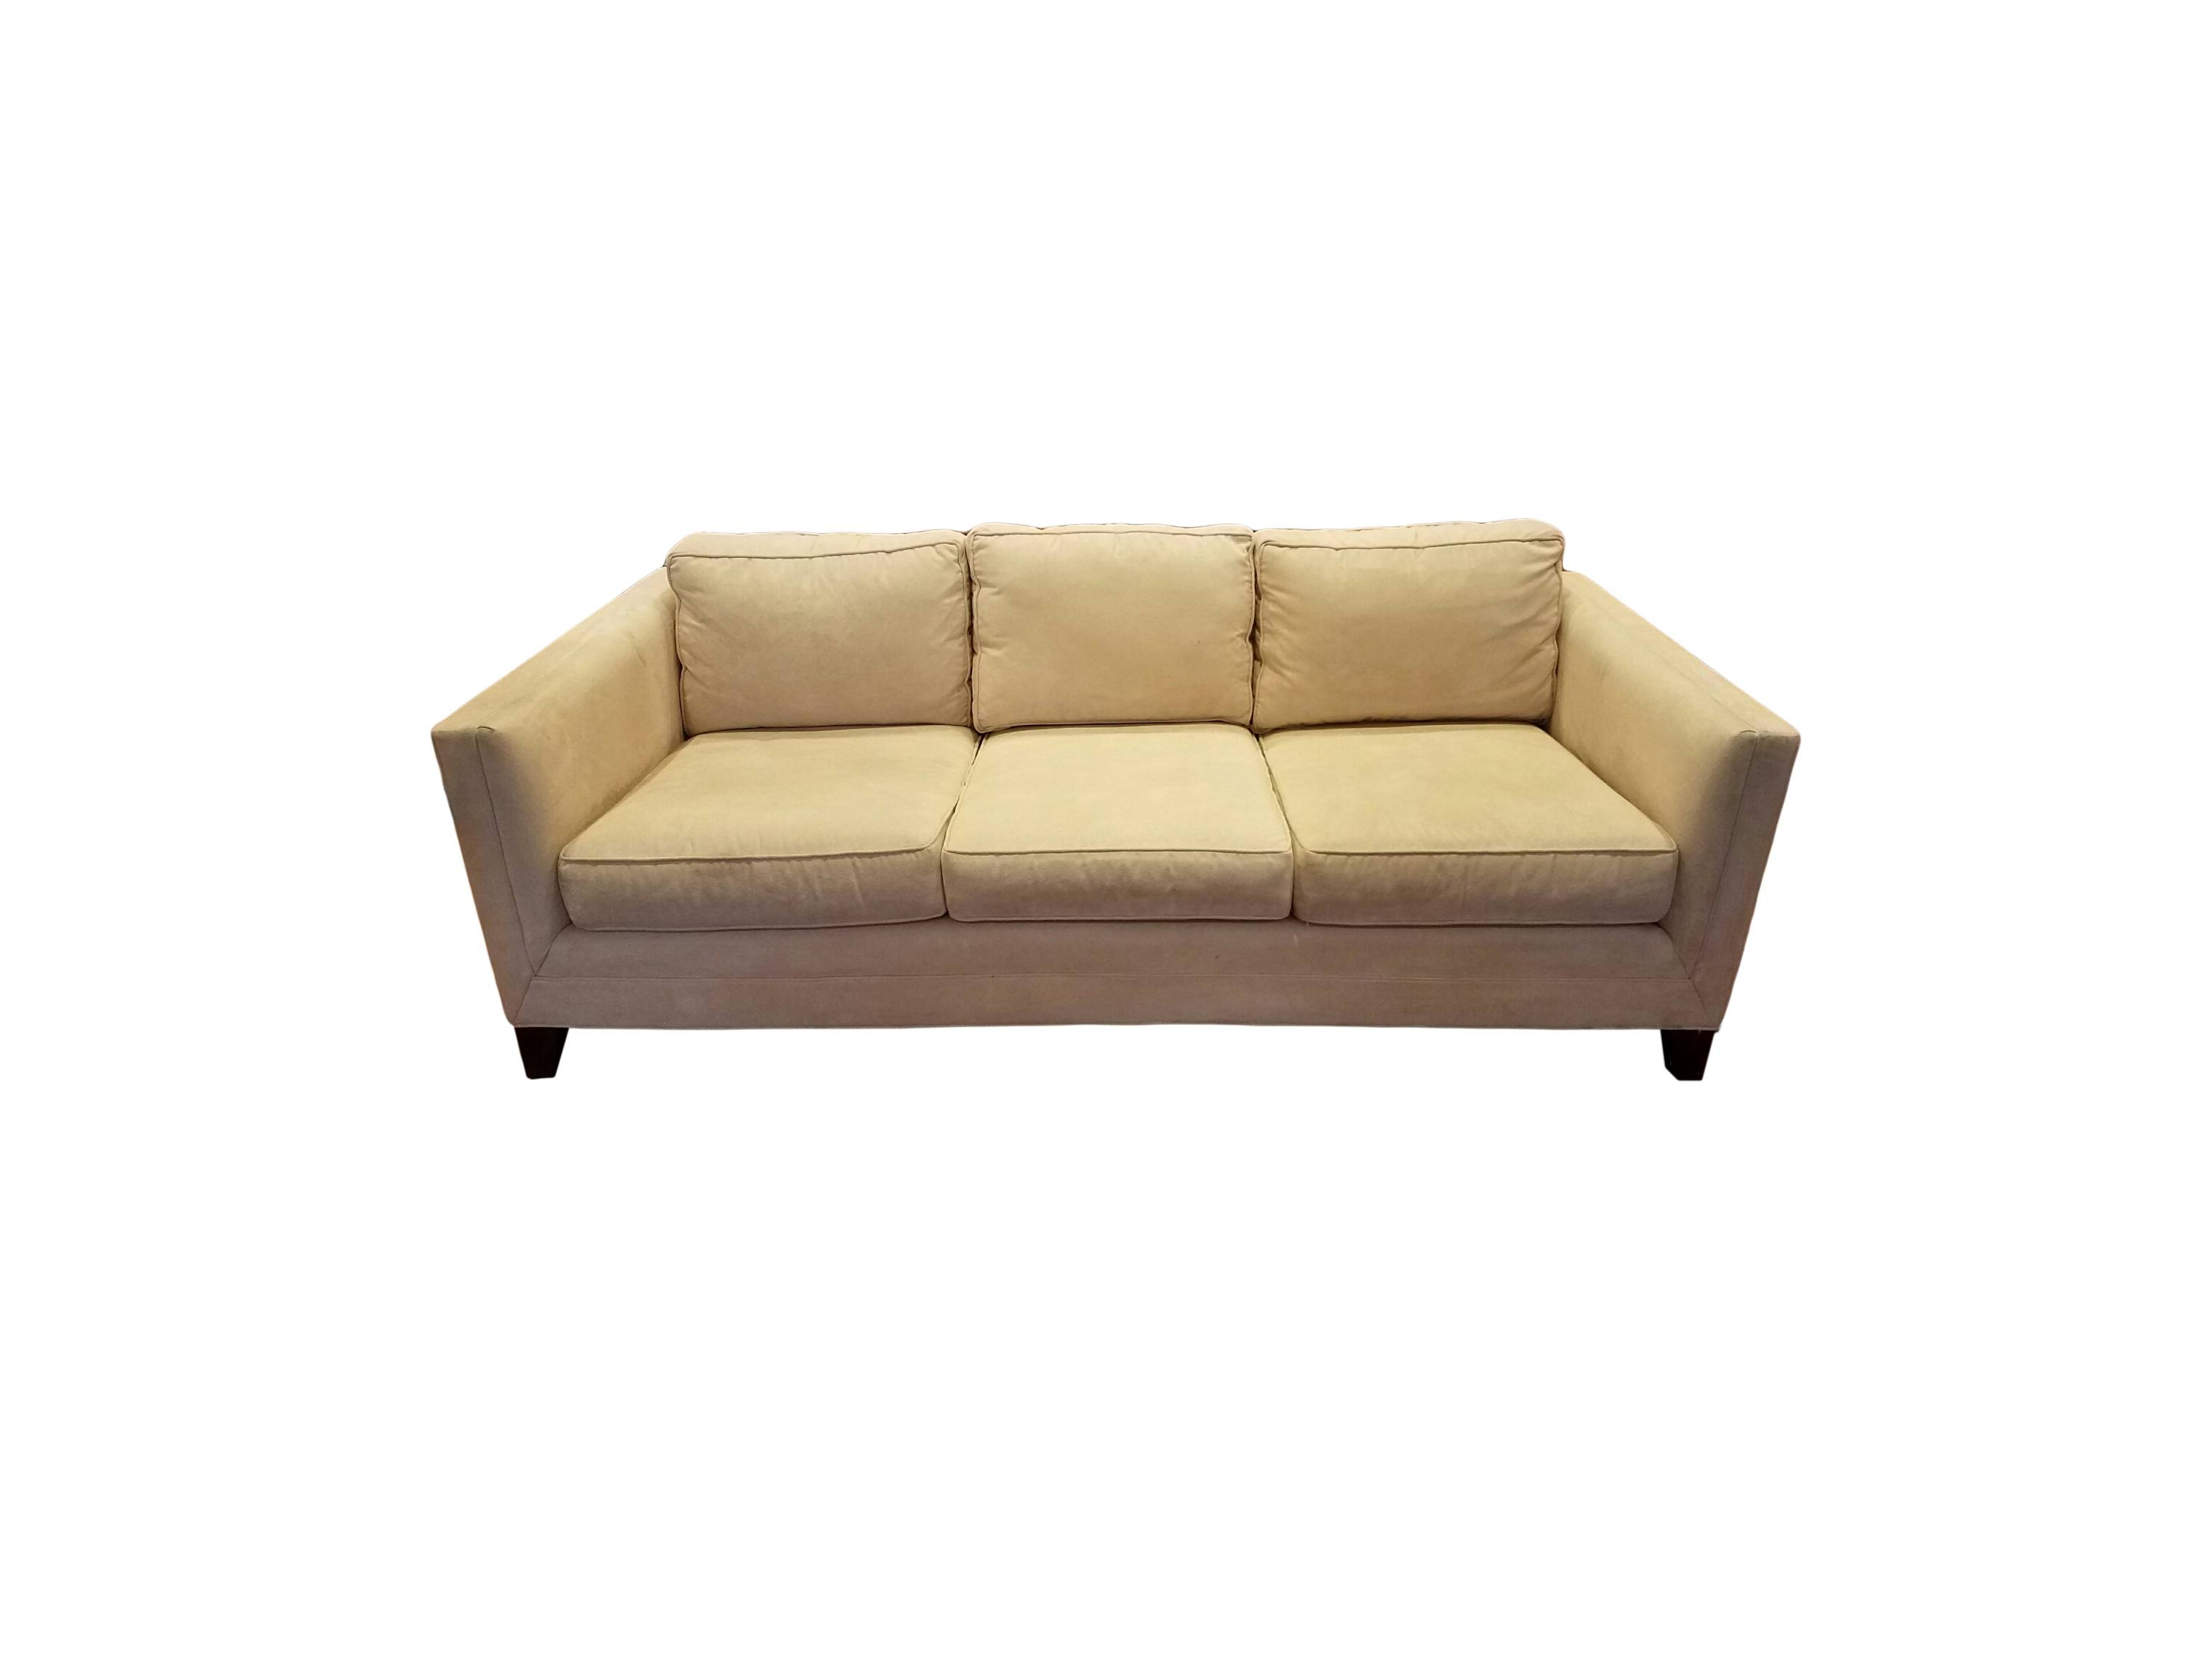 Furniture Home : Outstanding Mitchell Gold Clifton Sectional Sofa regarding Mitchell Gold Sofa Slipcovers (Image 10 of 26)